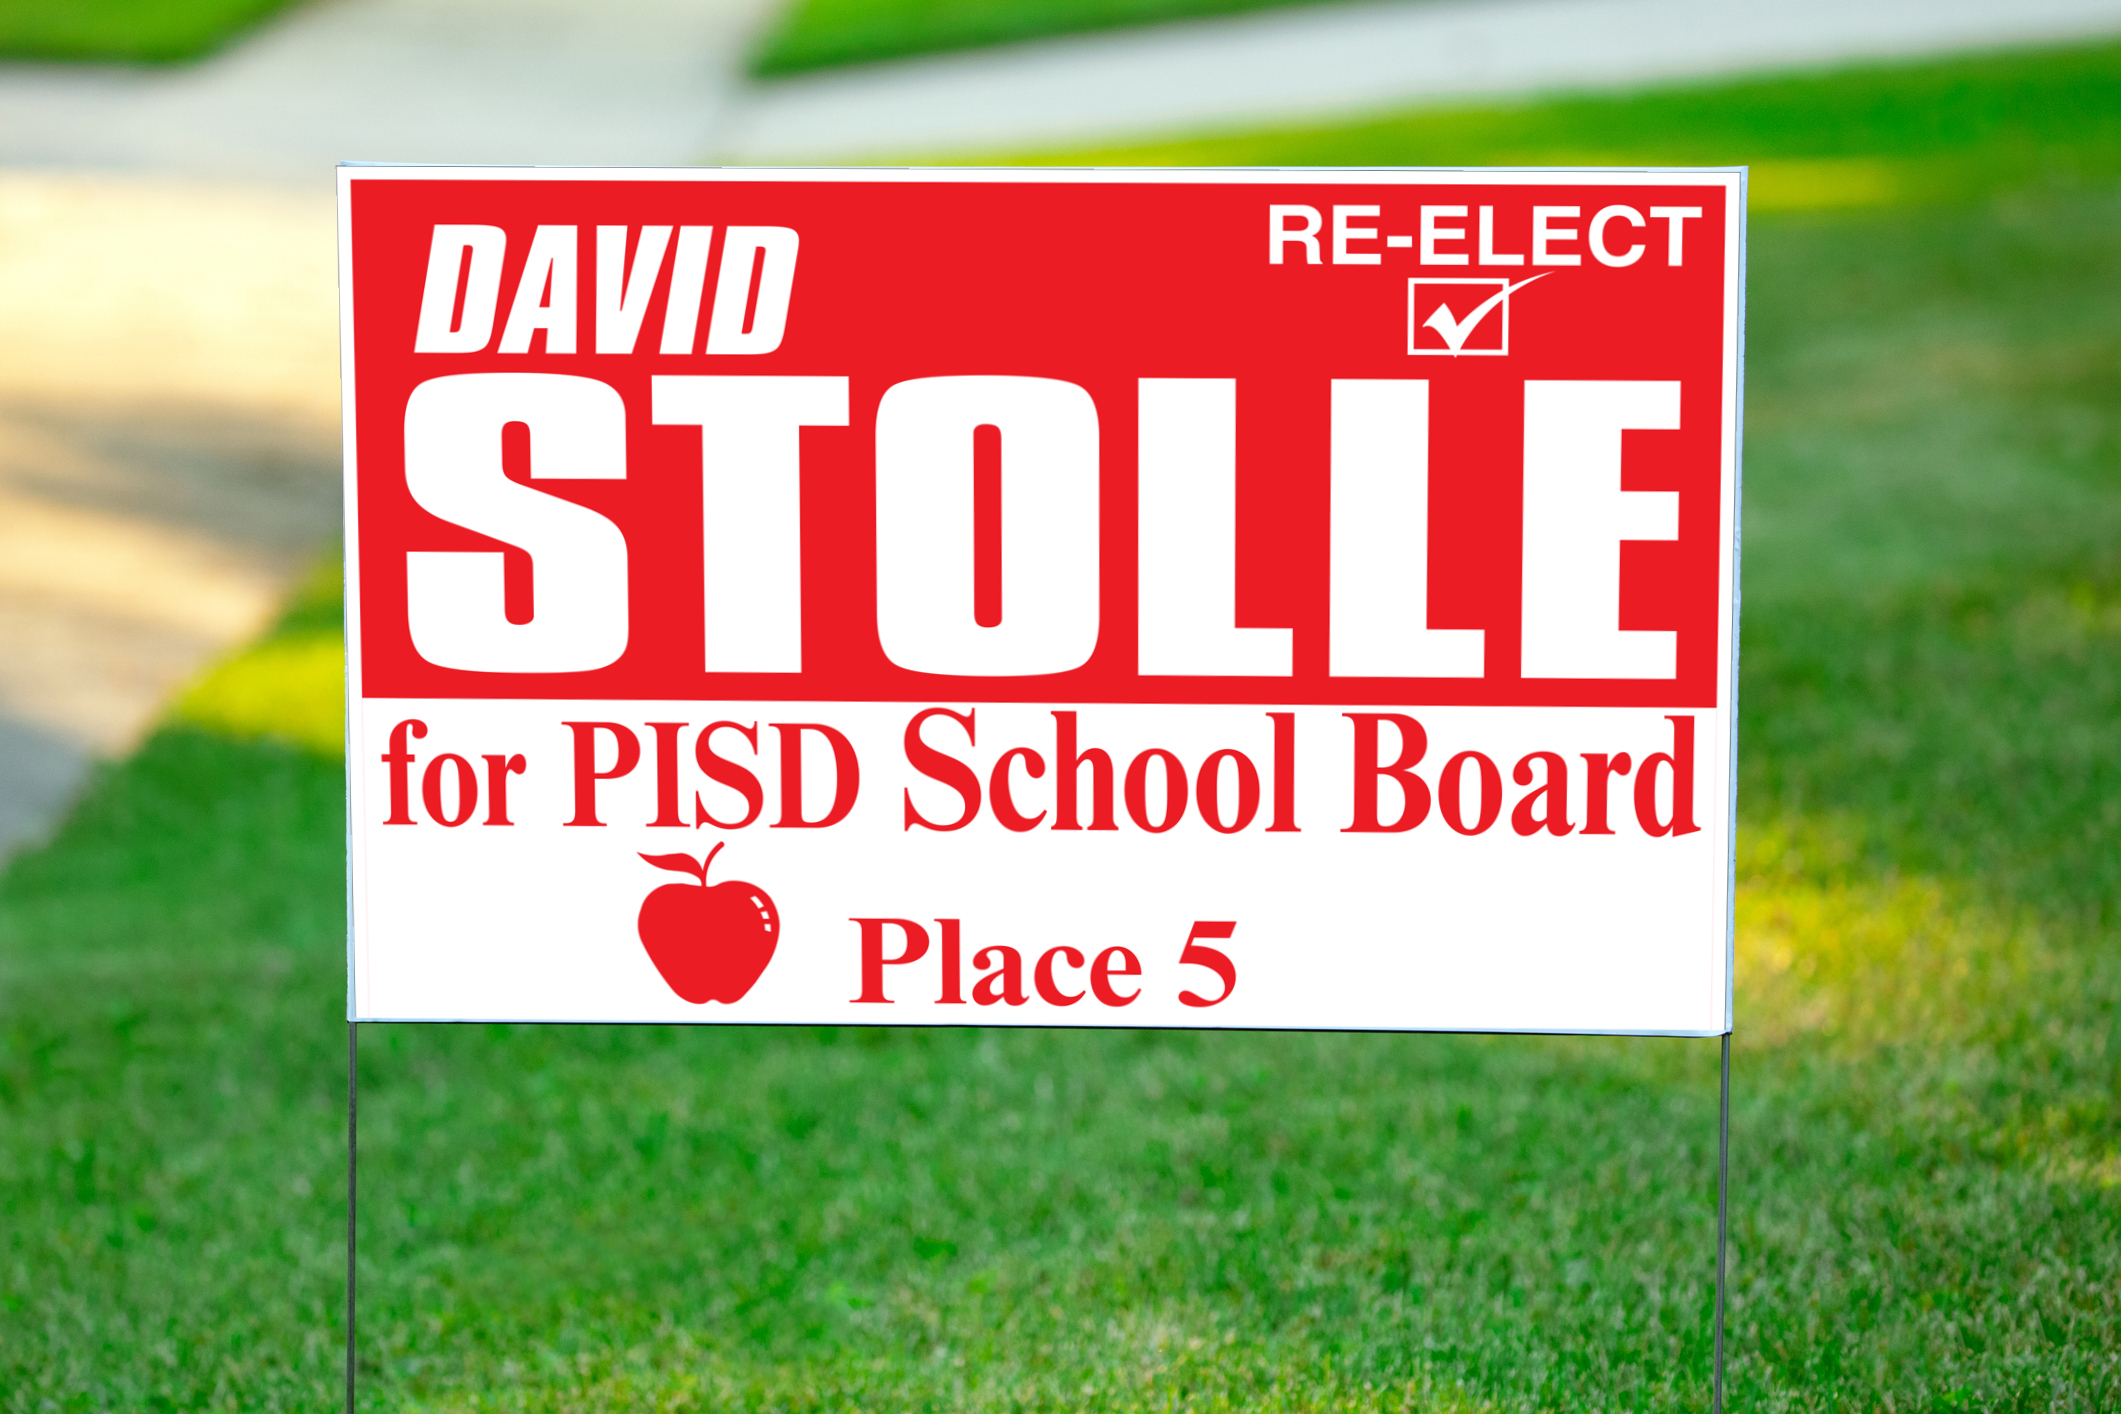 David Stolle_Yard Sign Image.jpg